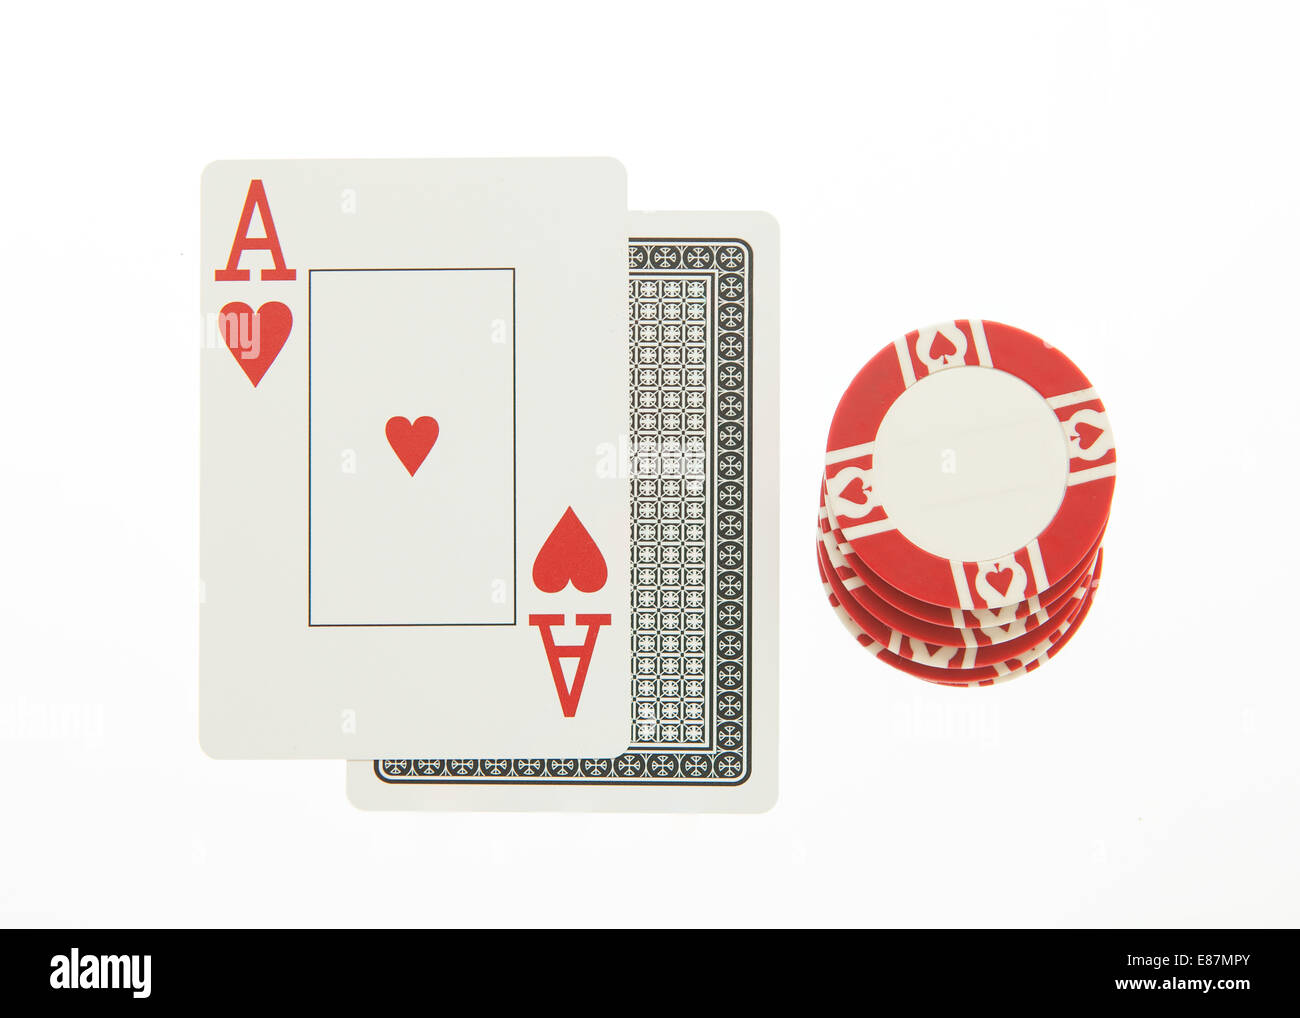 Blackjack hand with casino chip - Stock Image